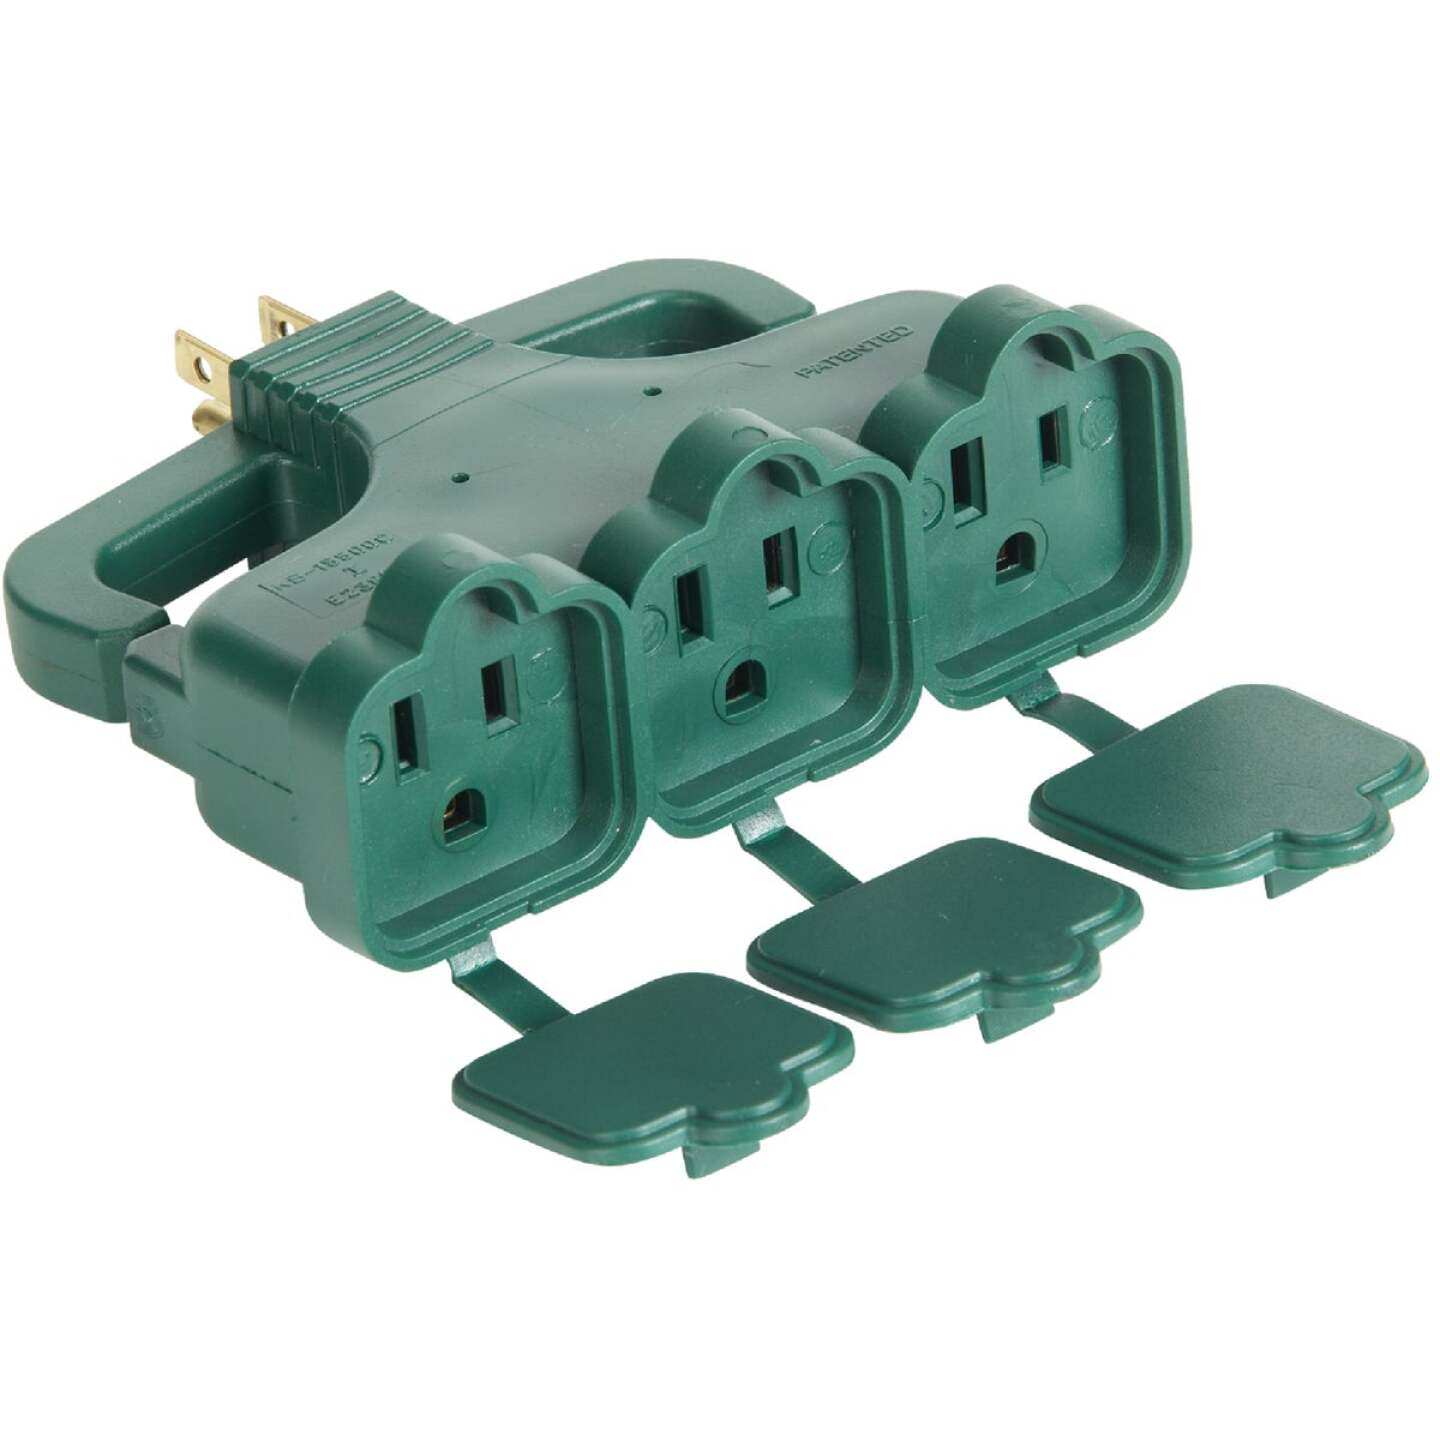 Do it Green 15A 3-Outlet Tap with Rain Cover Image 1